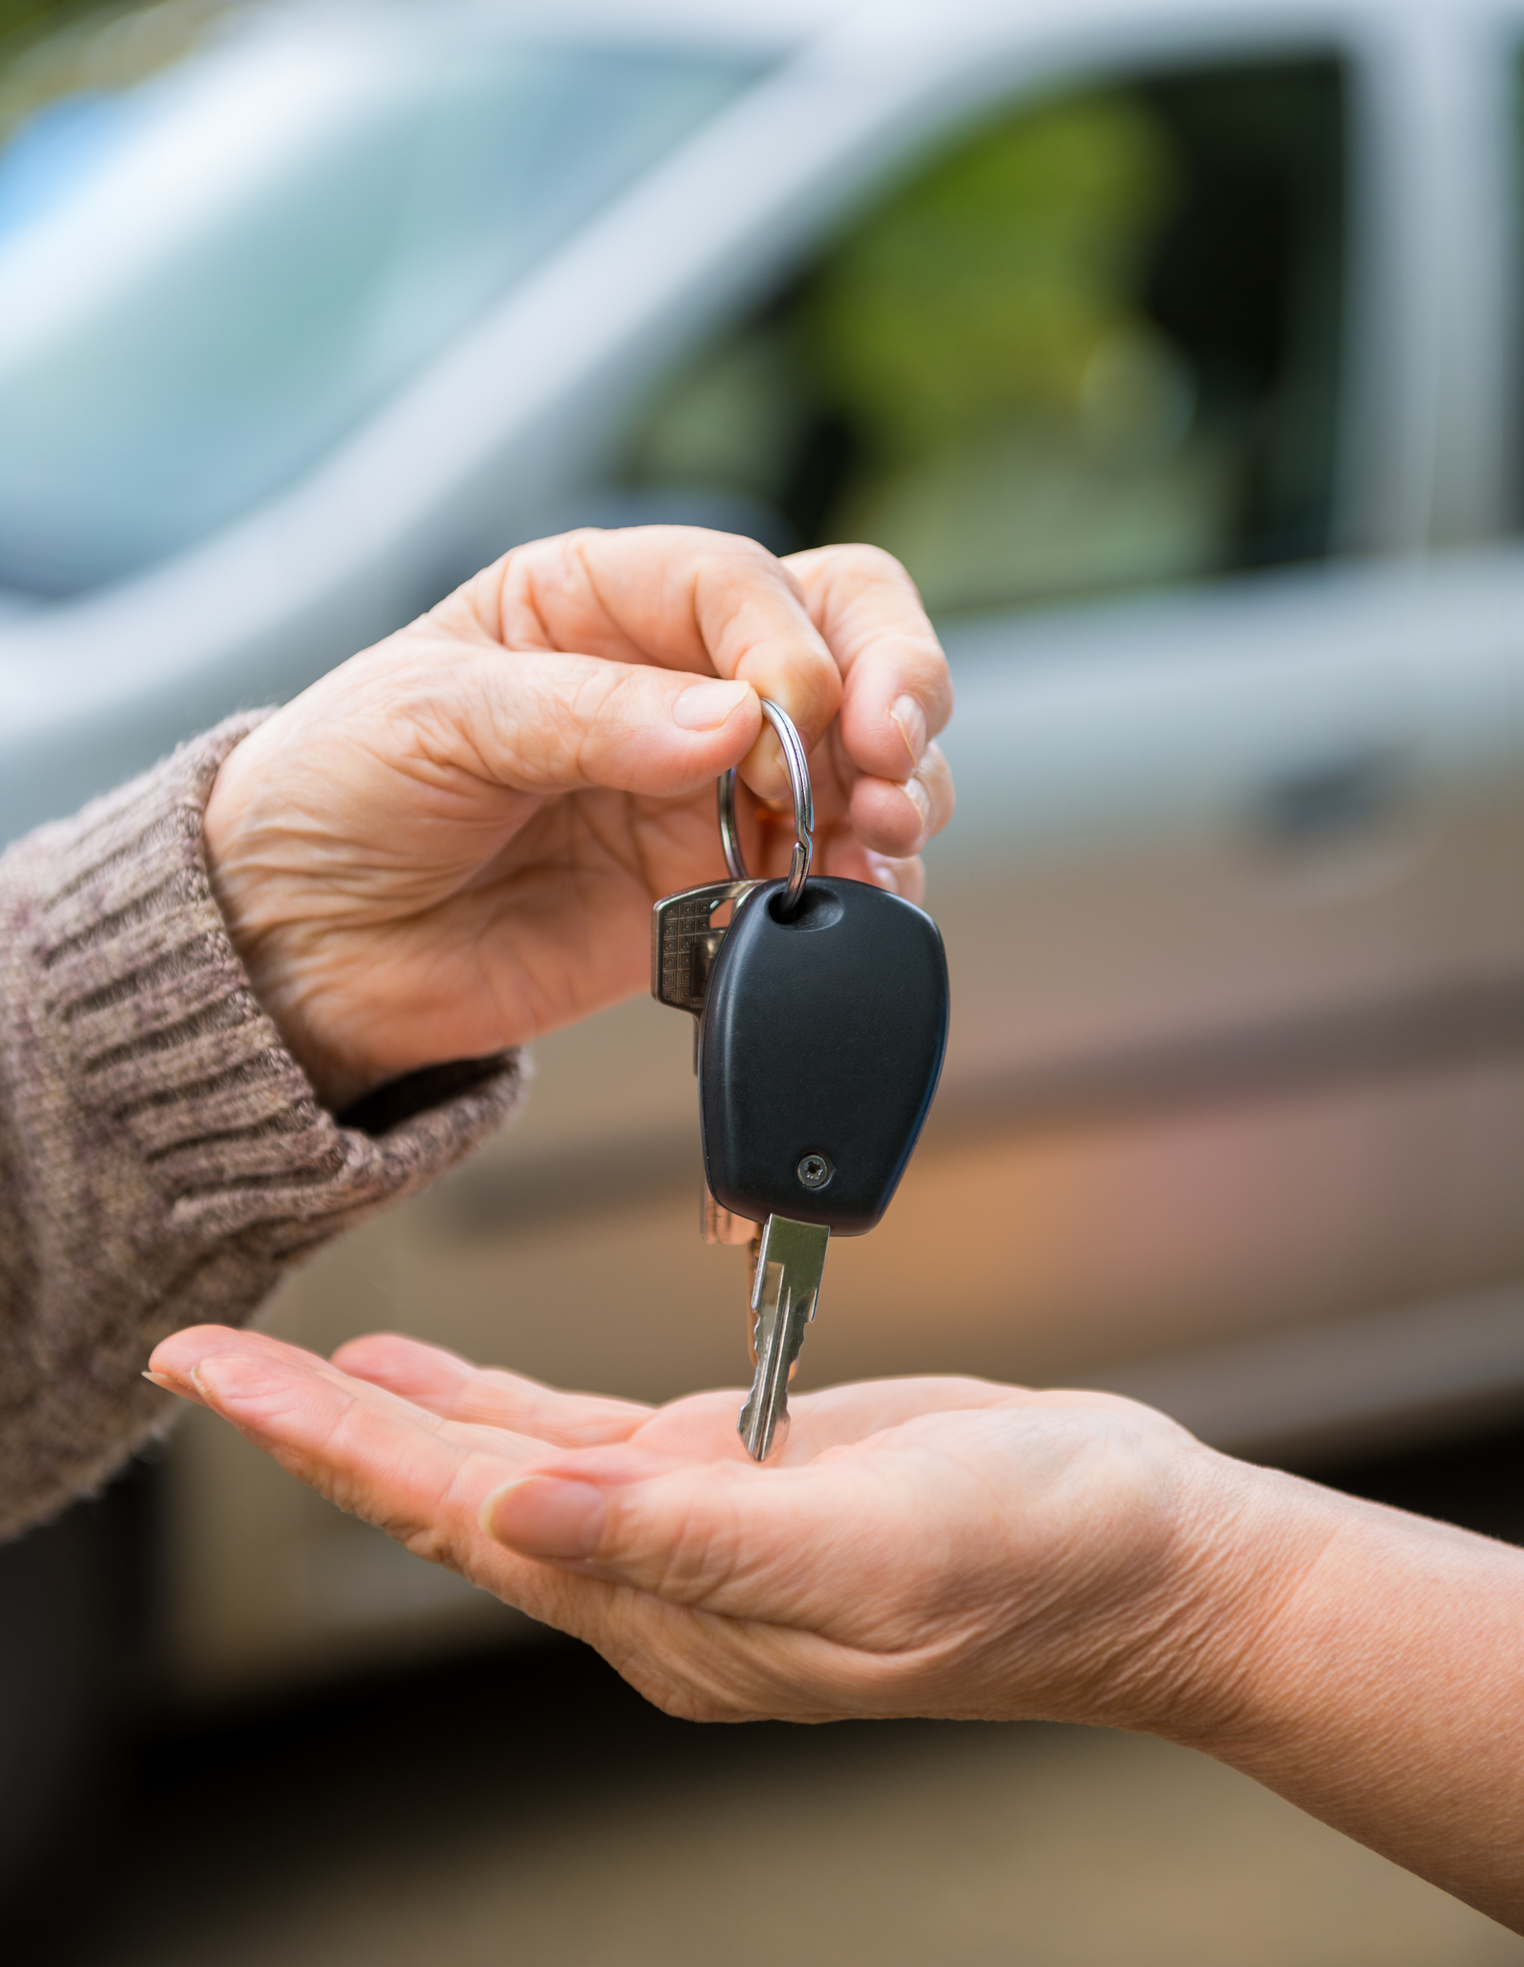 Woman giving car keys dreamstime_m_44326659.jpg